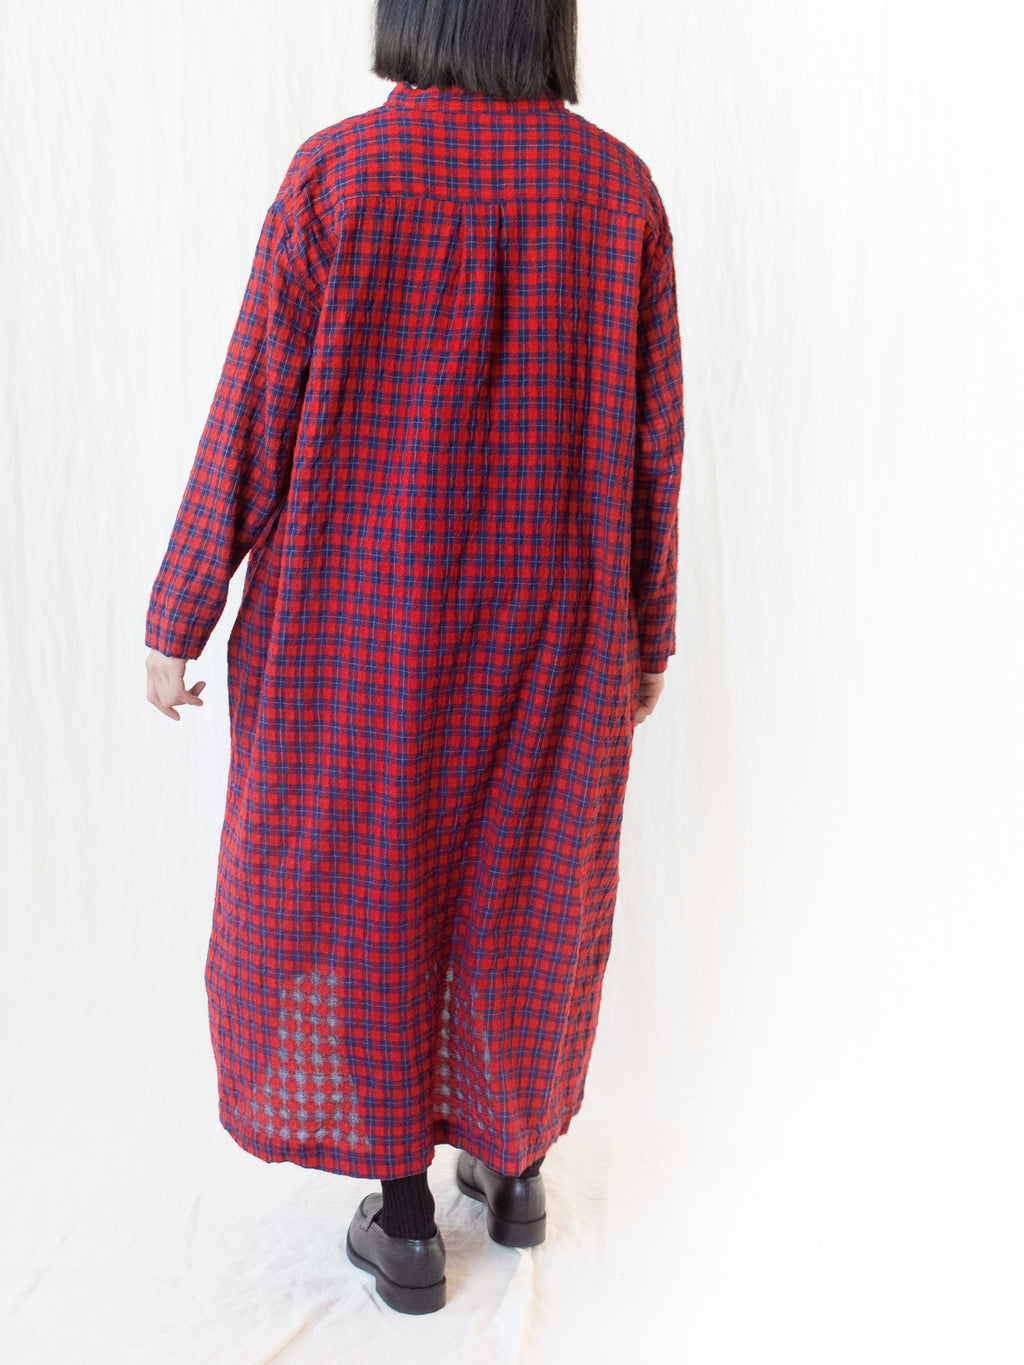 Namu Shop - Ichi Antiquites Wool Gauze Check Dress - Red